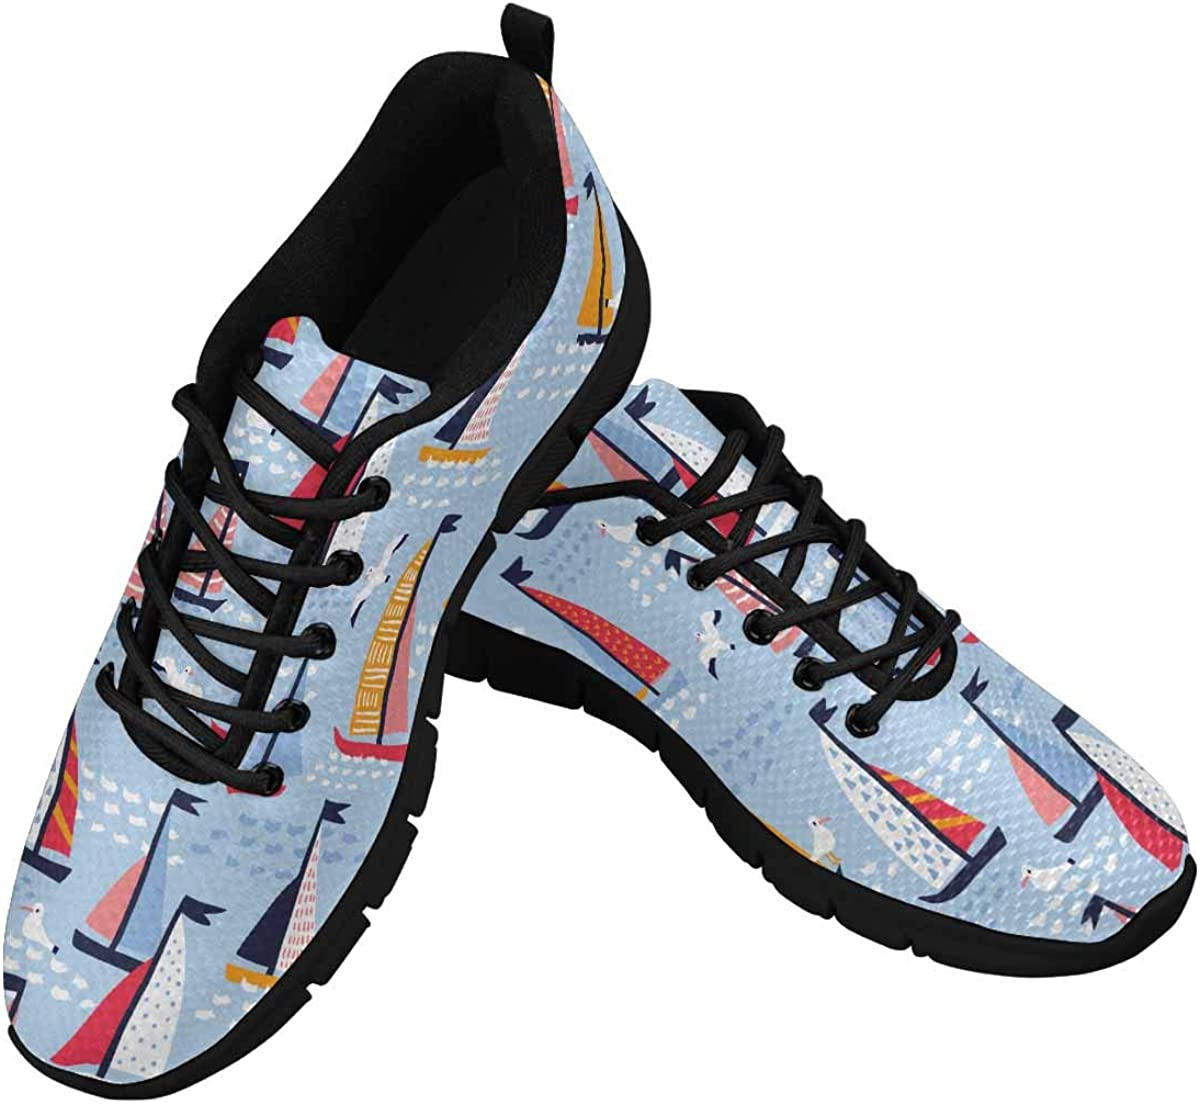 Shipping included INTERESTPRINT Sailing Yachts and Women's Mesh Seagulls Athletic Popular popular